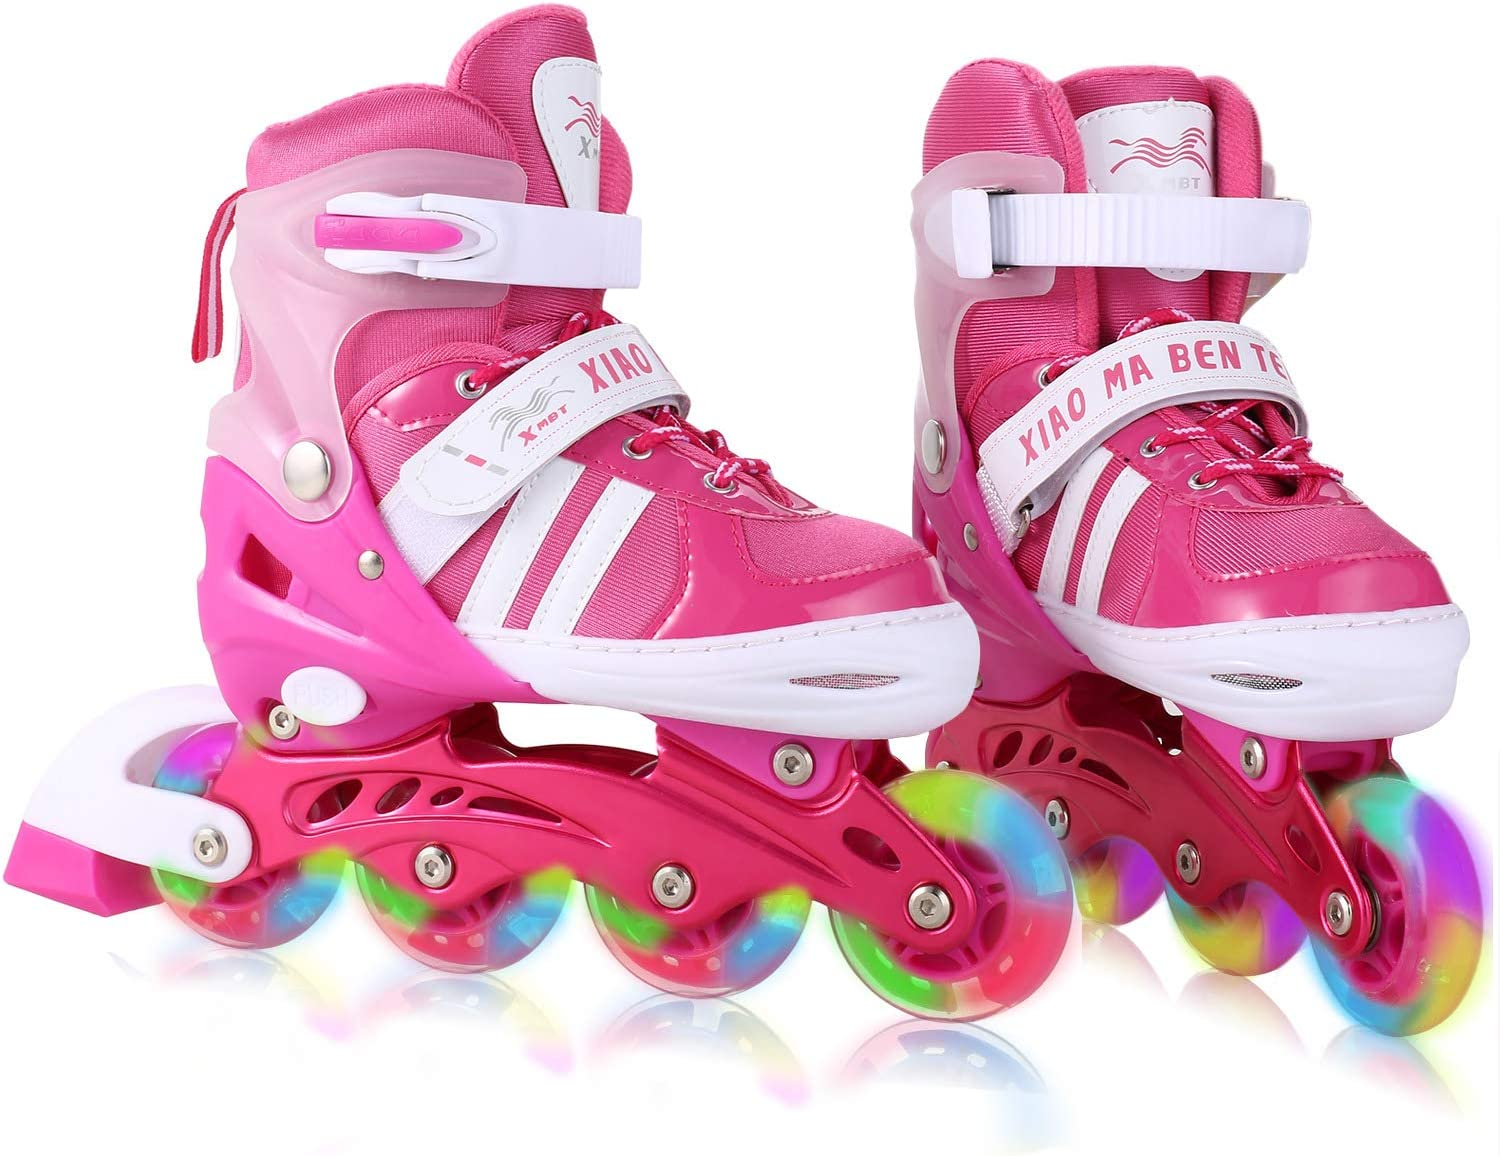 Dongchuan Inline Skates Women Men Adjustable Size 5-8 Kid 12J-2 2-5 for Boys Girls Aggressive Roller Skates with LED PU Wheels Durable Outdoor Indoor Gift Toddlers Teen